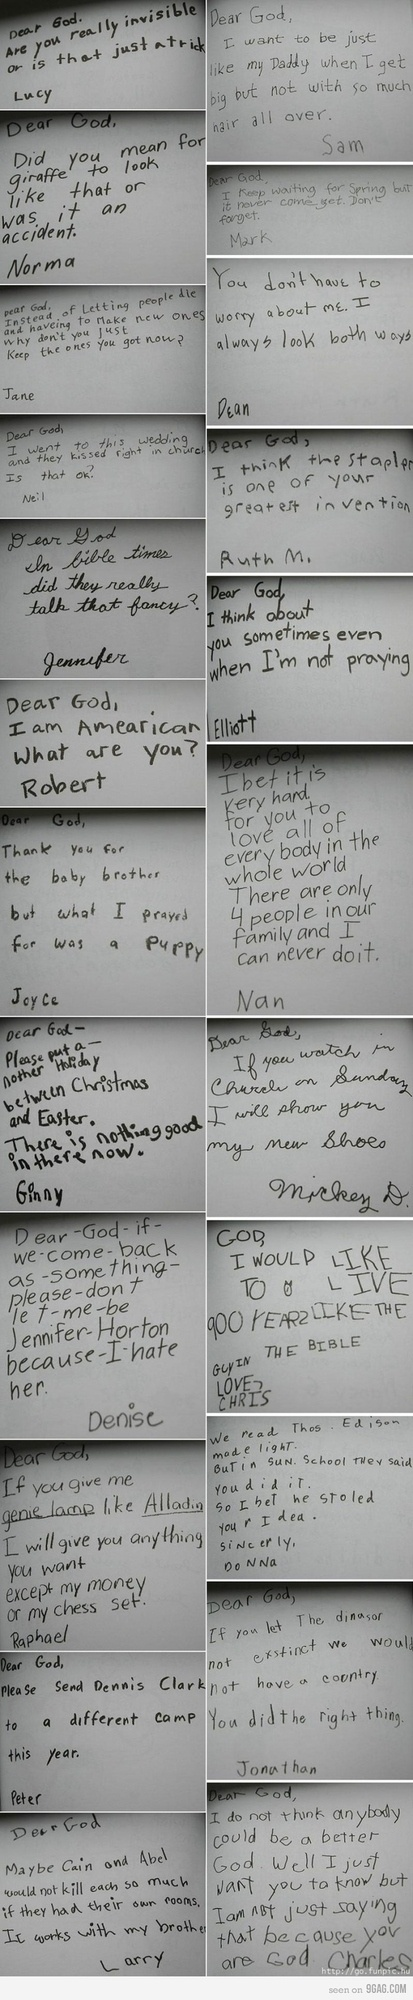 funny things kids write LDS mormon (6)